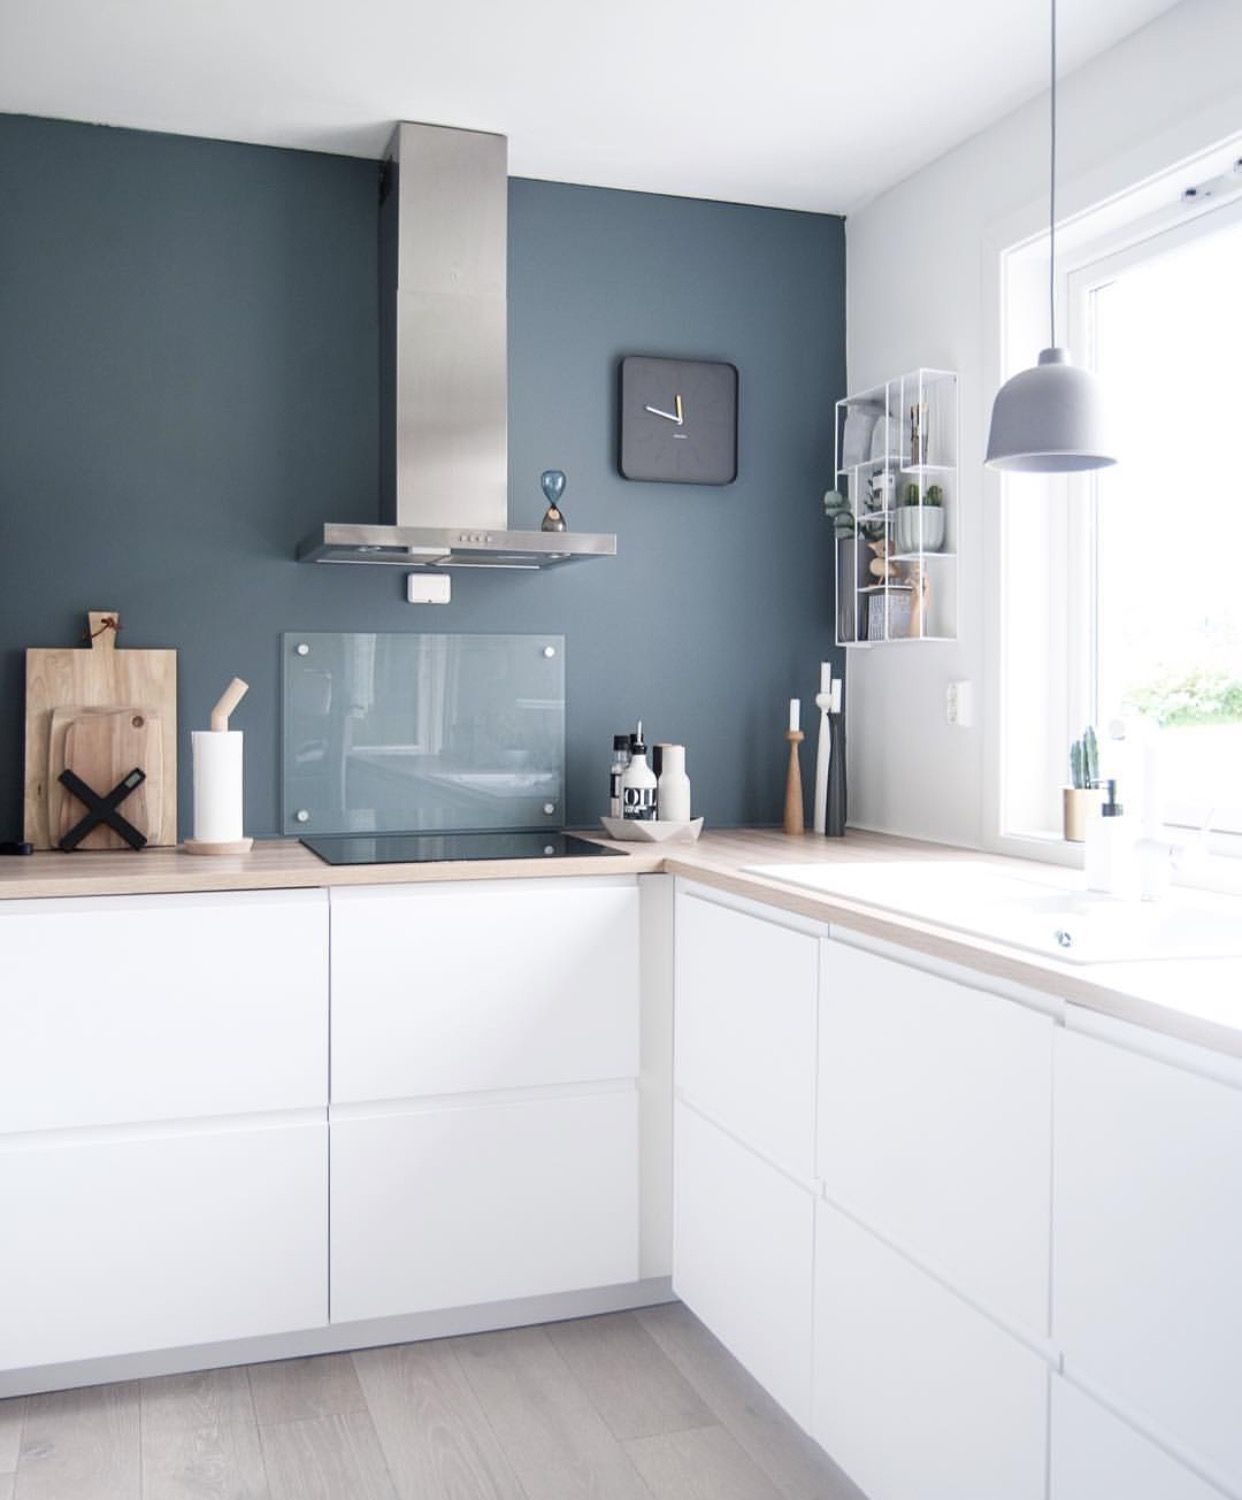 Mur Cuisine Bleu Pin By Natalie Wihongi On Kitchens Pinterest Déco Maison Deco